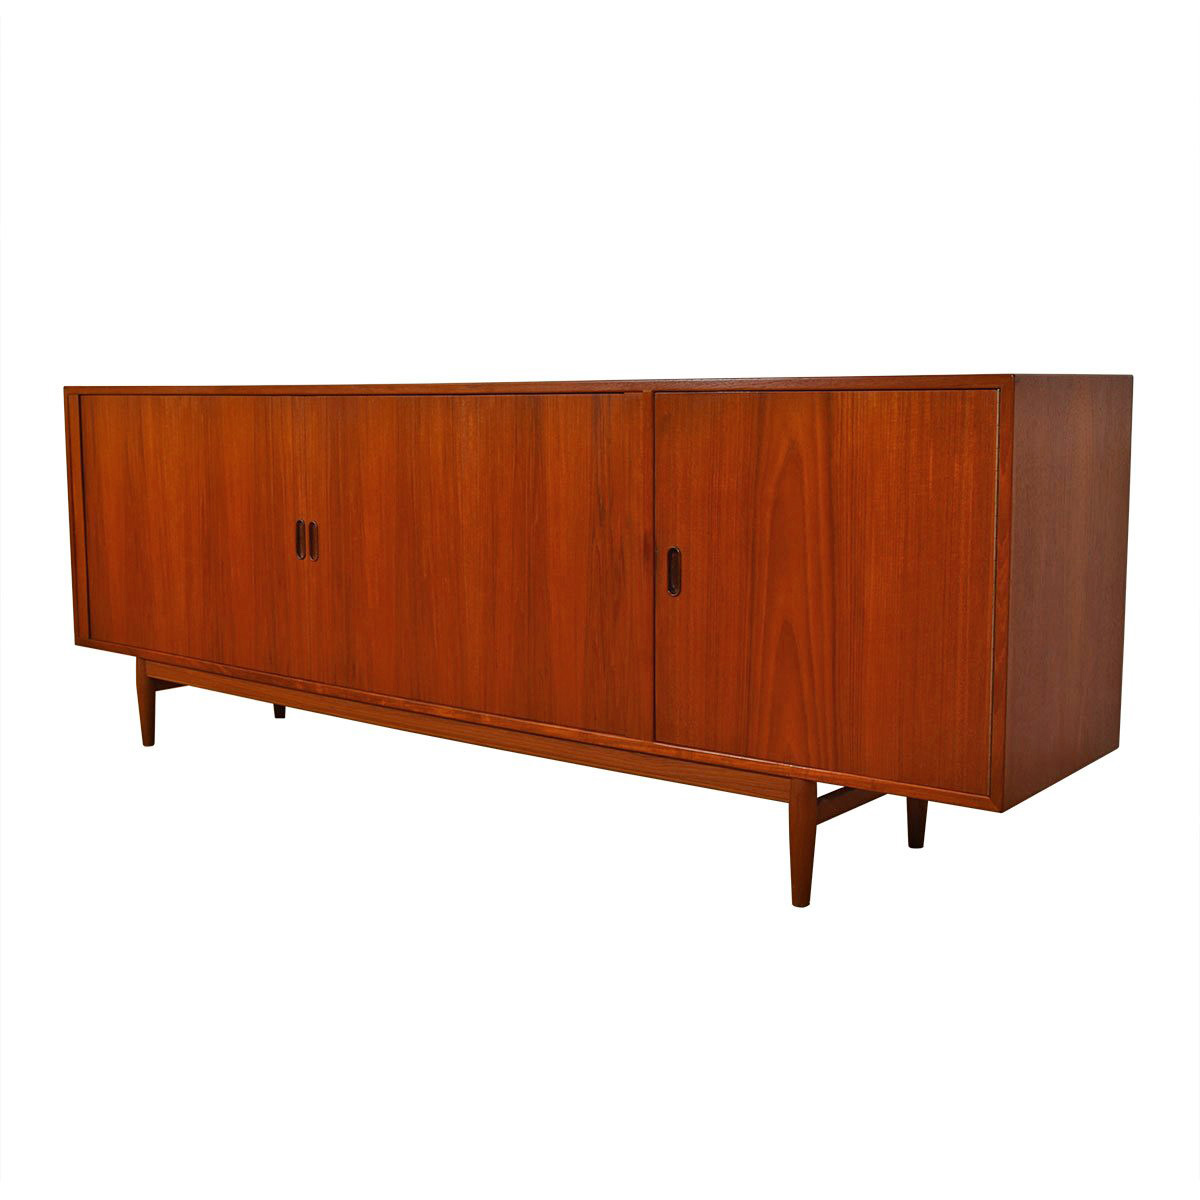 Arne Vodder Danish Teak Tambour Door Sideboard / Room Divider.